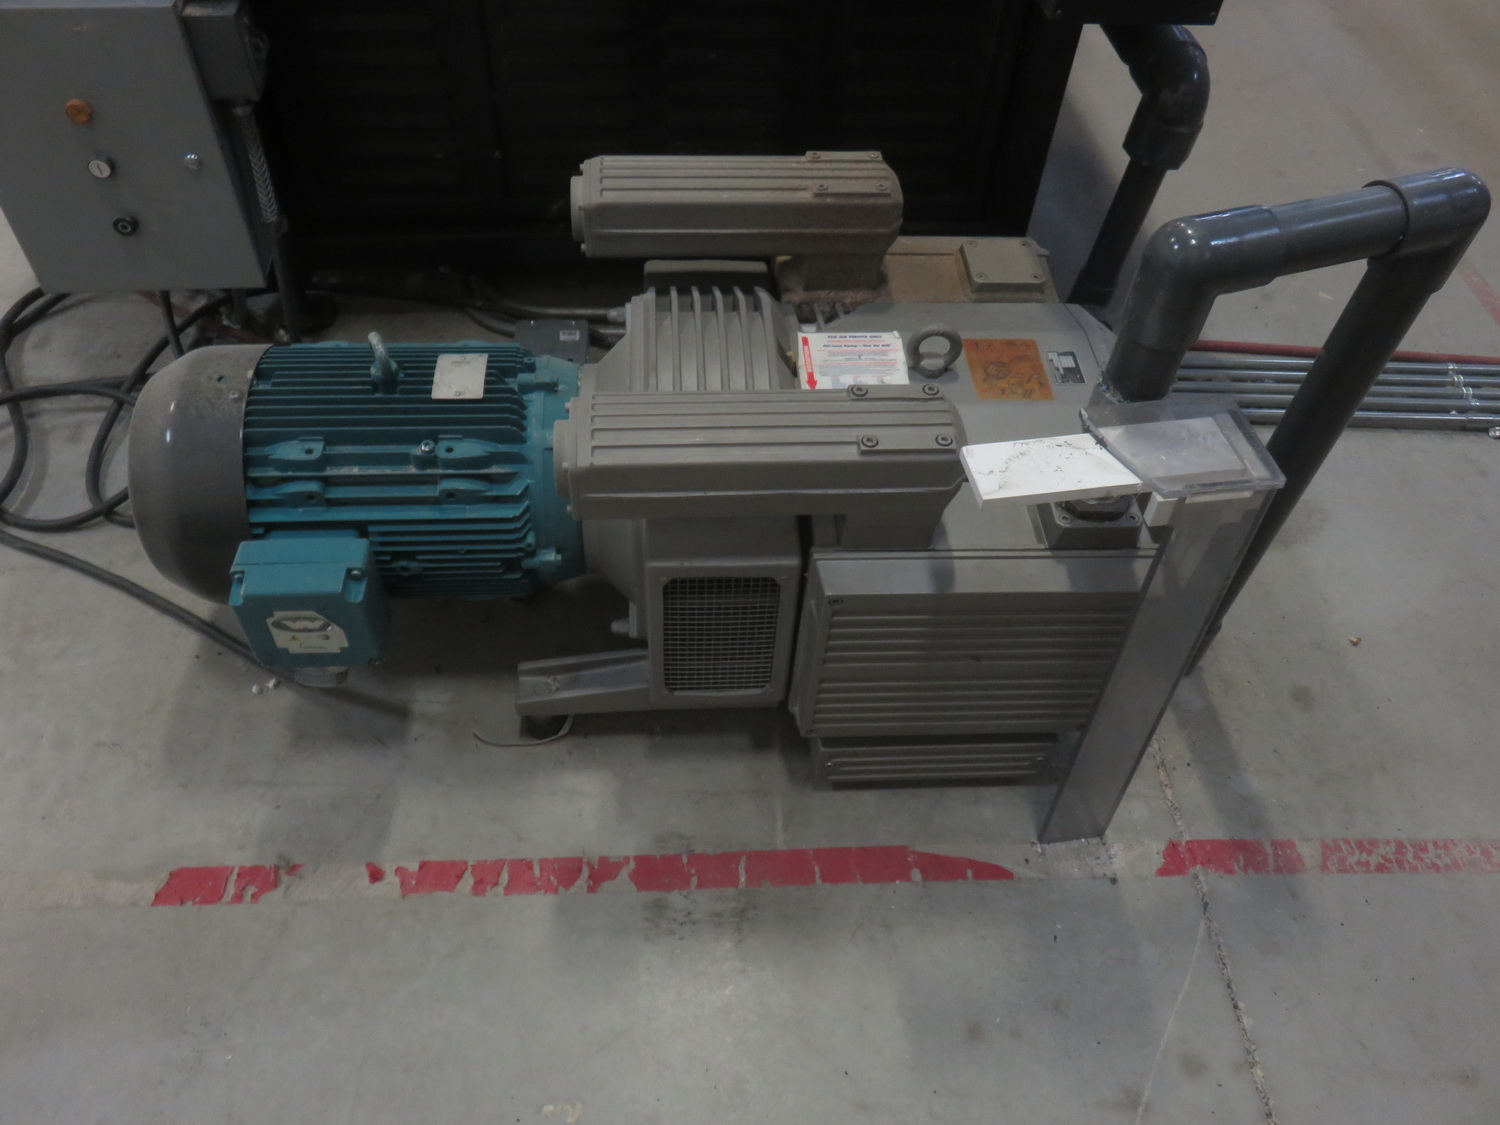 """AXYZ MODEL 4004 CNC ROUTER W/ 2004 BECKER VTLF 250 SK VACUUM PUMP, ES915 ROUTER & 72"""" X 60"""" TABLE - Image 7 of 8"""